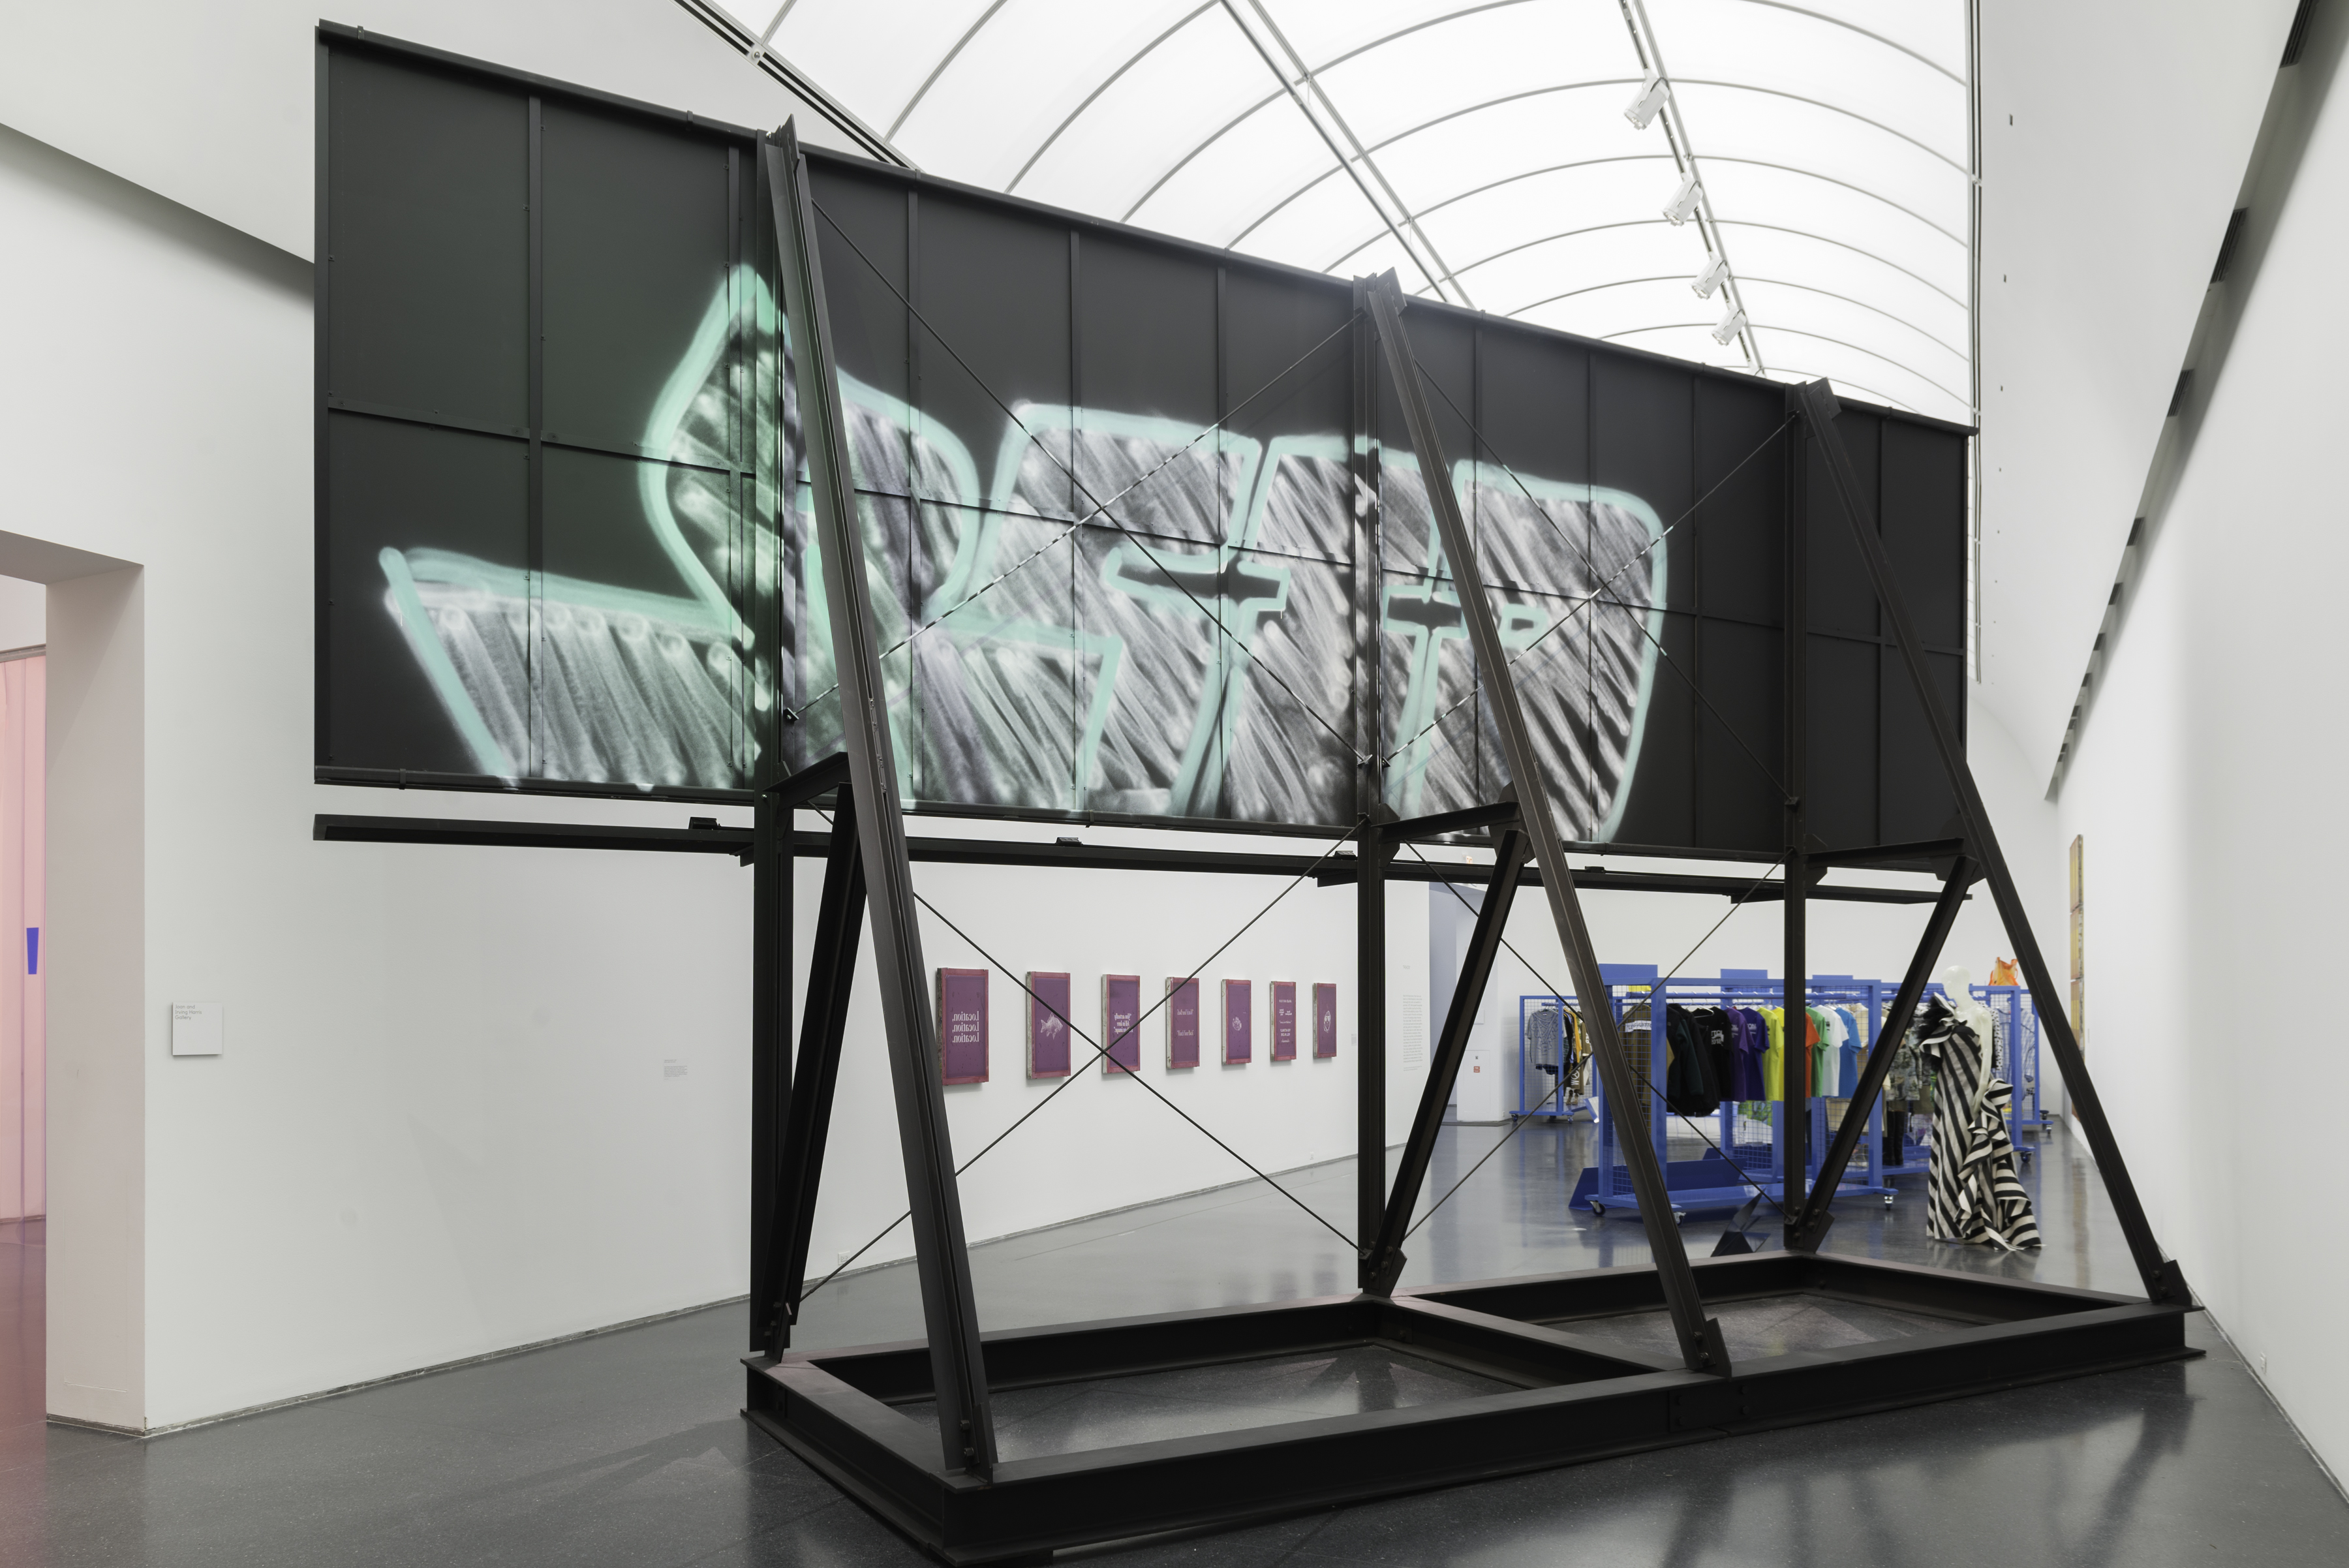 Photo of an artwork by Virgil Abloh made of black steel structure and graffiti on it